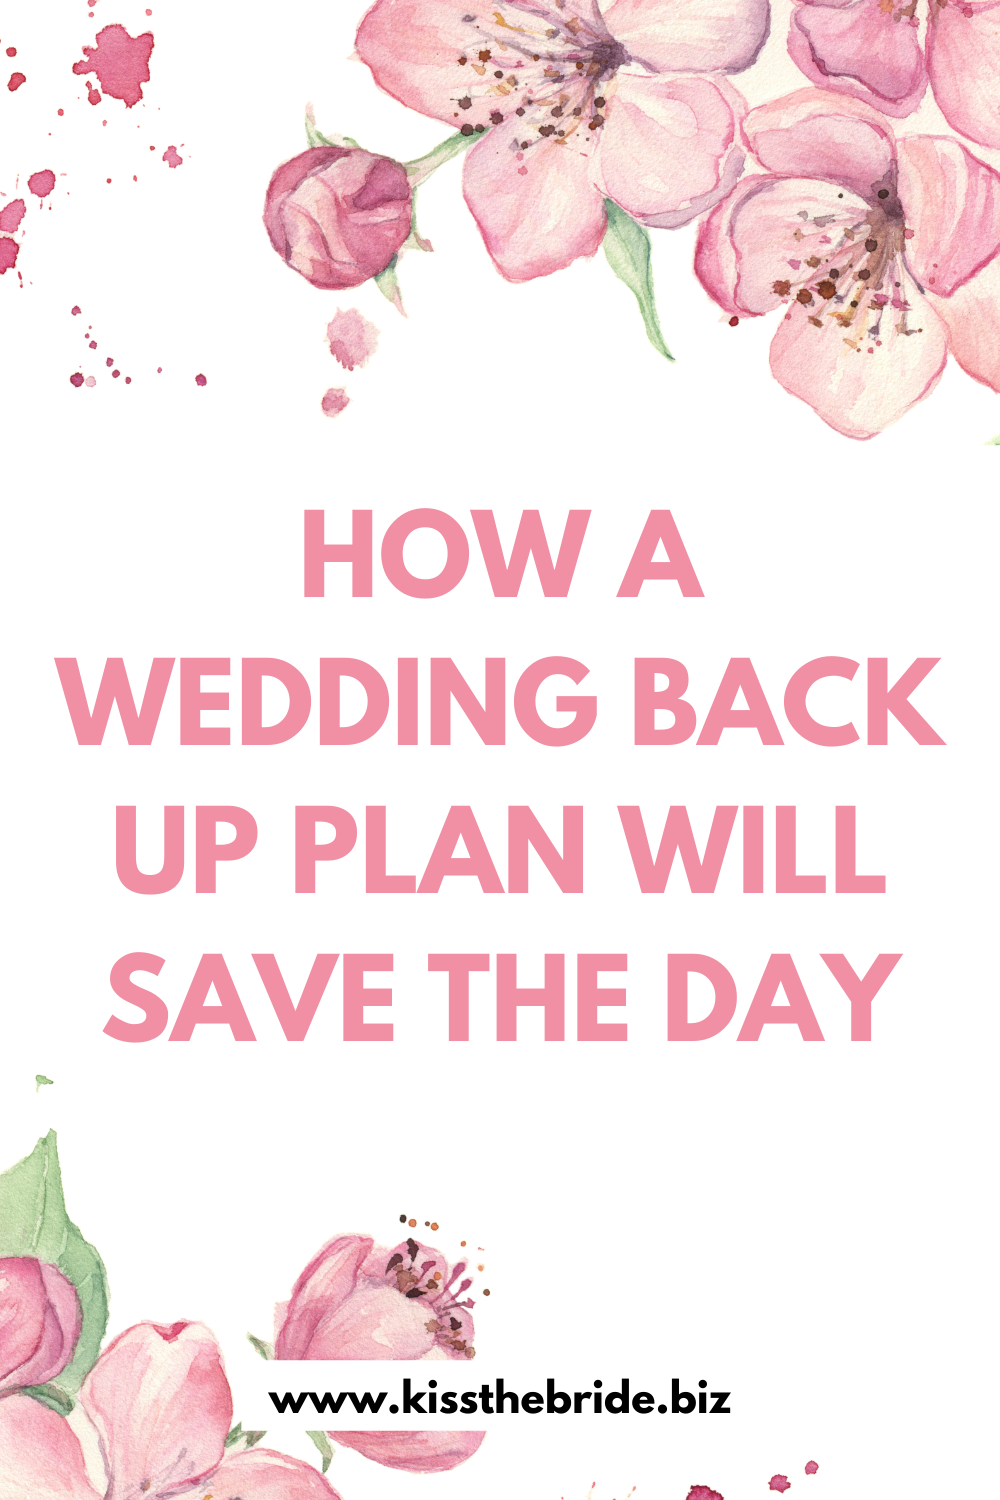 The wedding back up plan